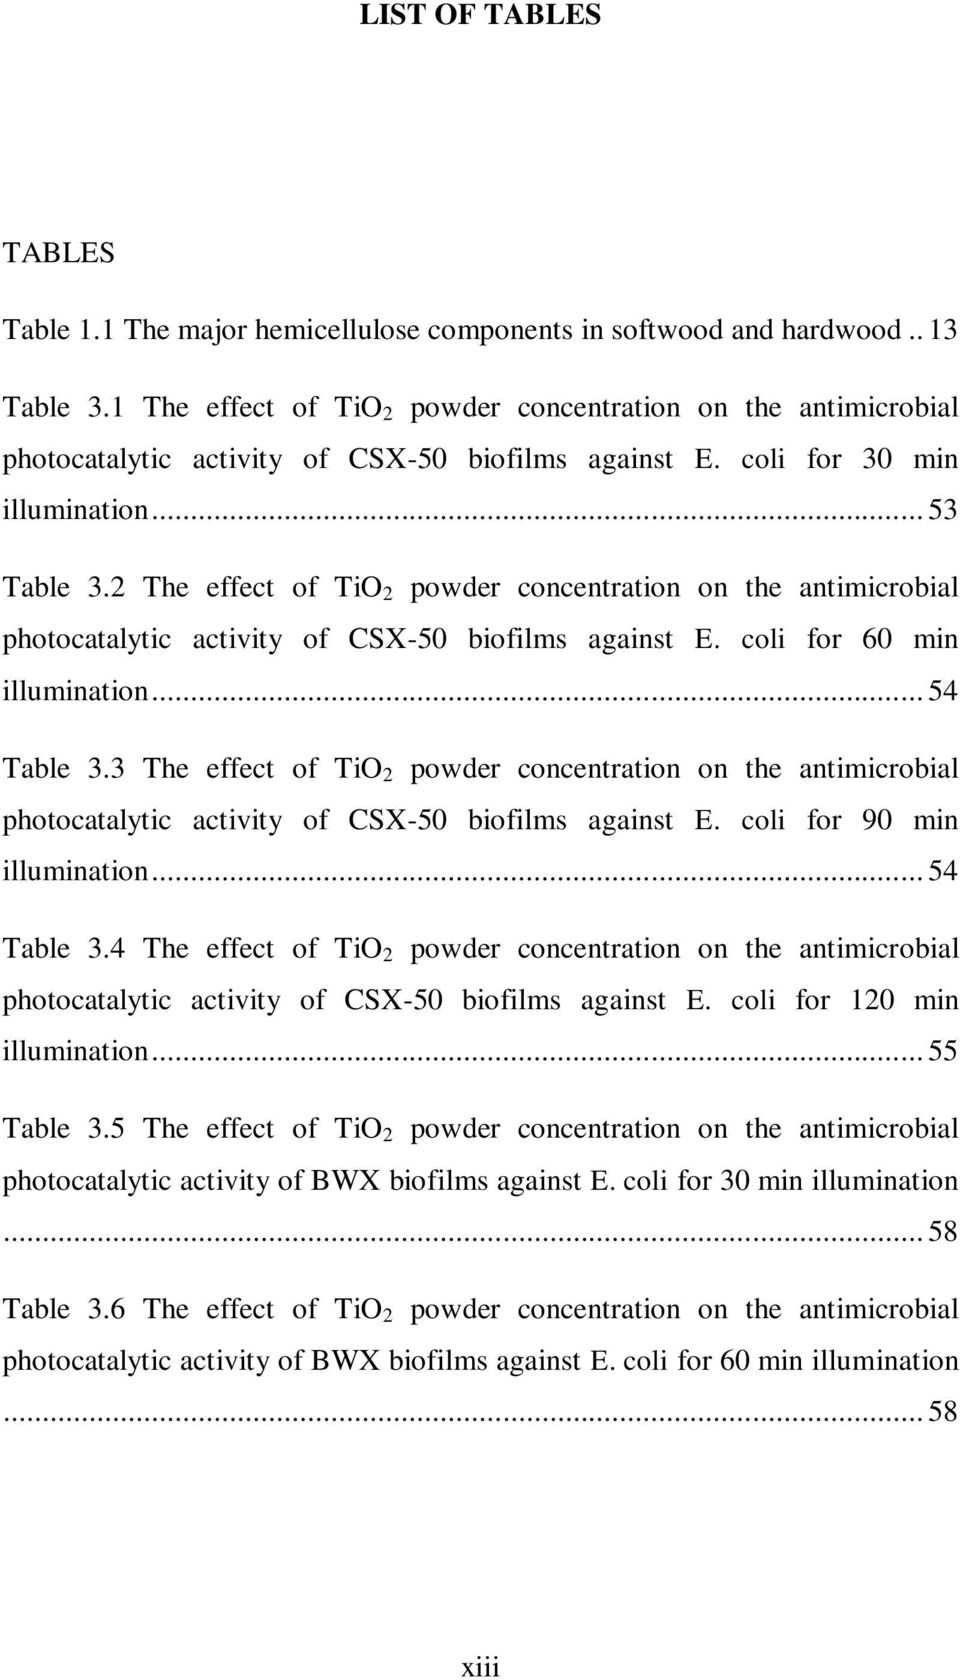 2 The effect of TiO 2 powder concentration on the antimicrobial photocatalytic activity of CSX-50 biofilms against E. coli for 60 min illumination... 54 Table 3.